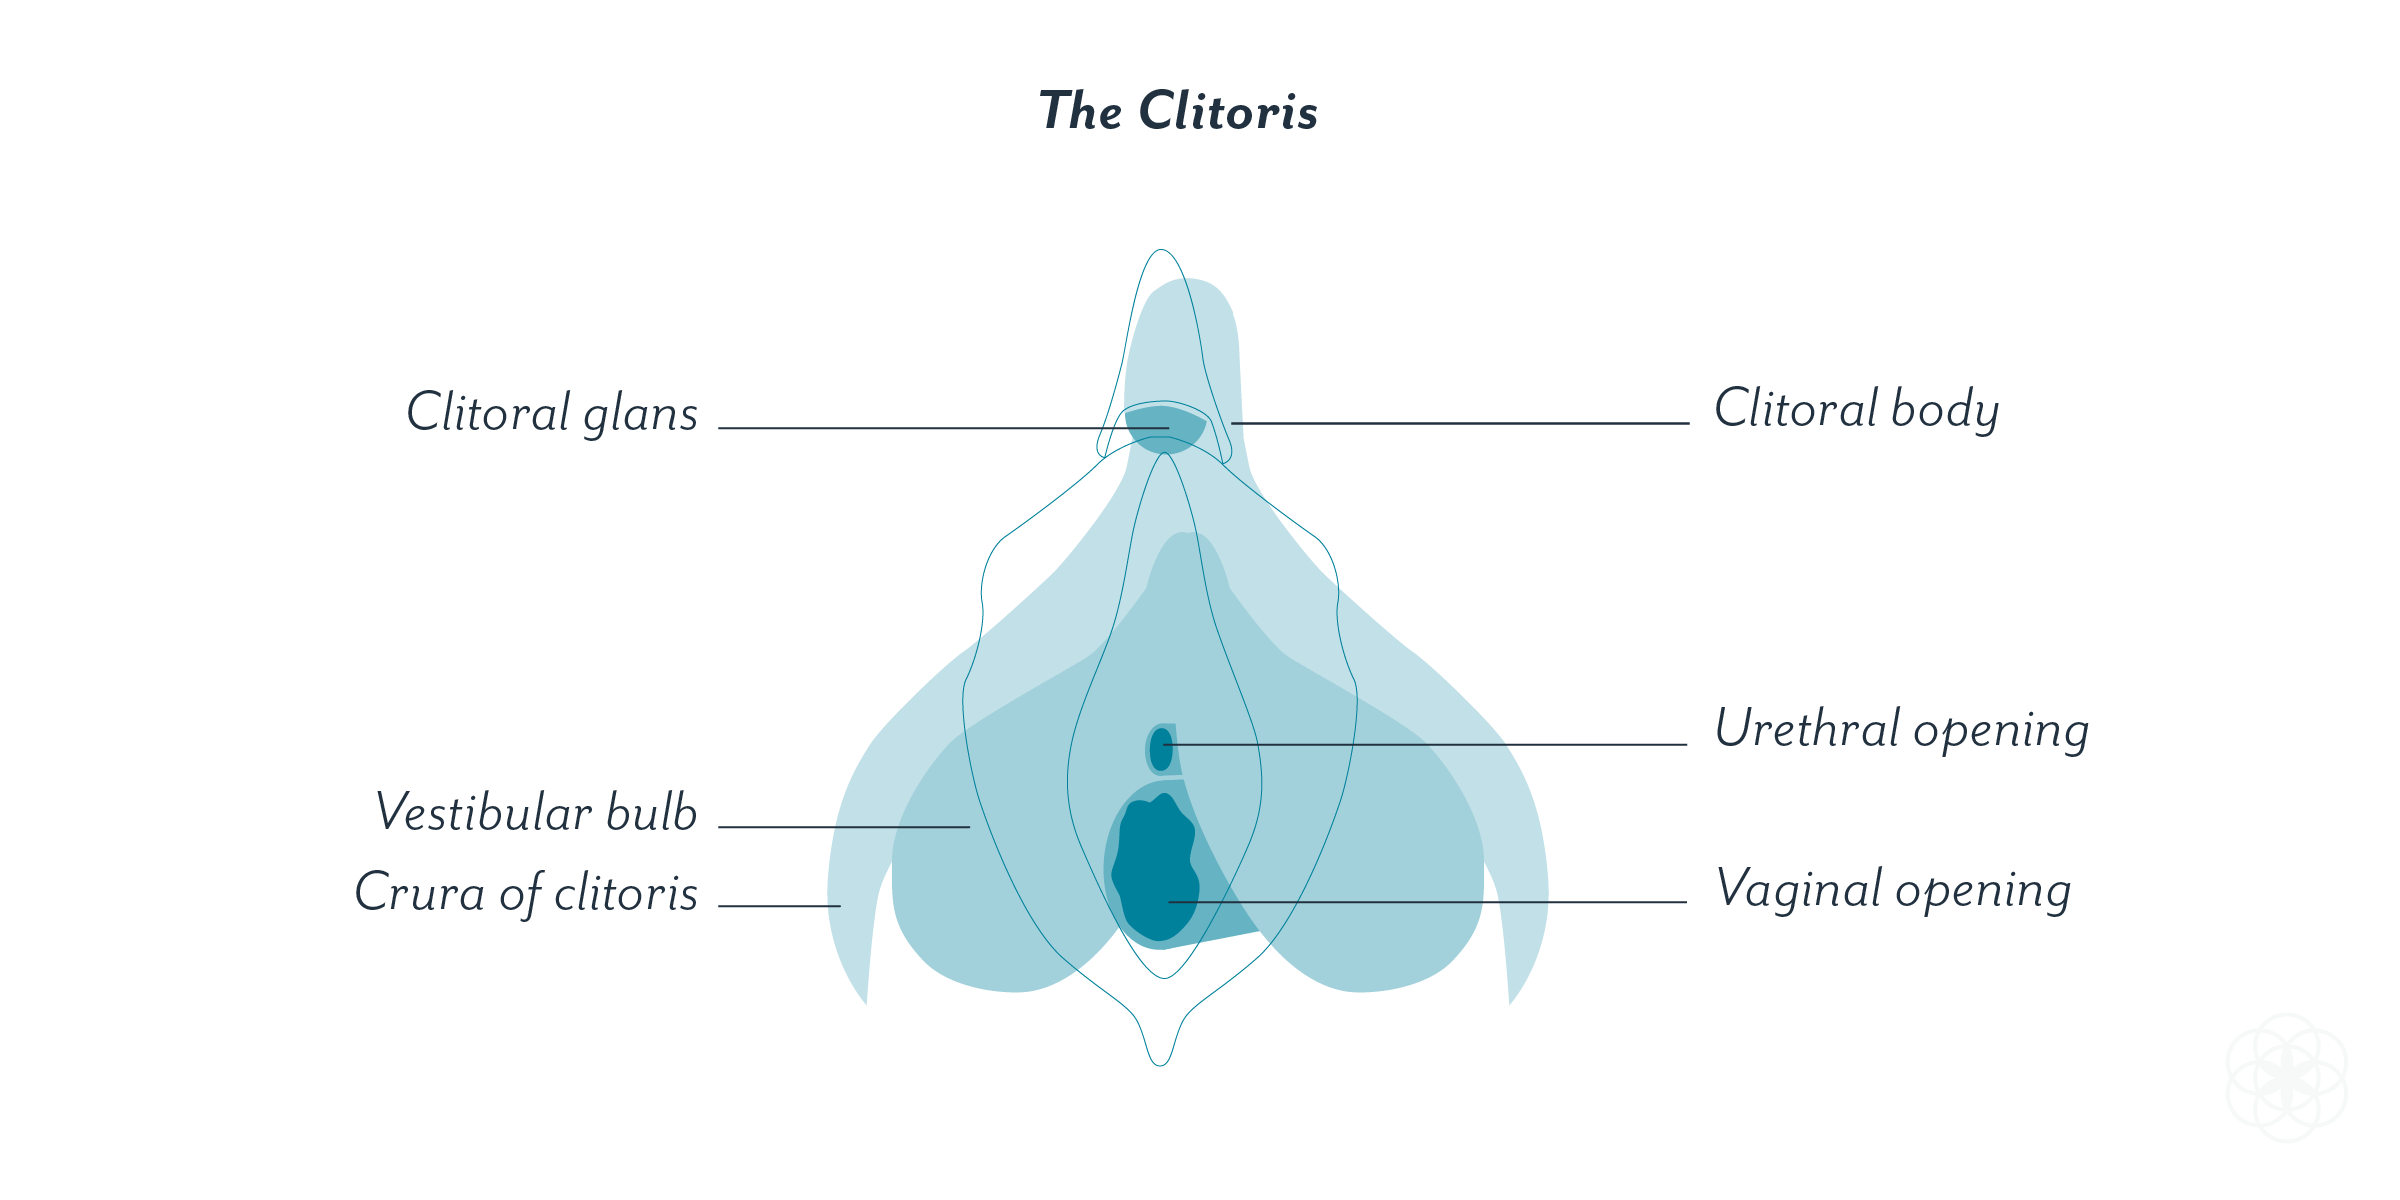 The Clitoris Female Pleasure And Anatomy